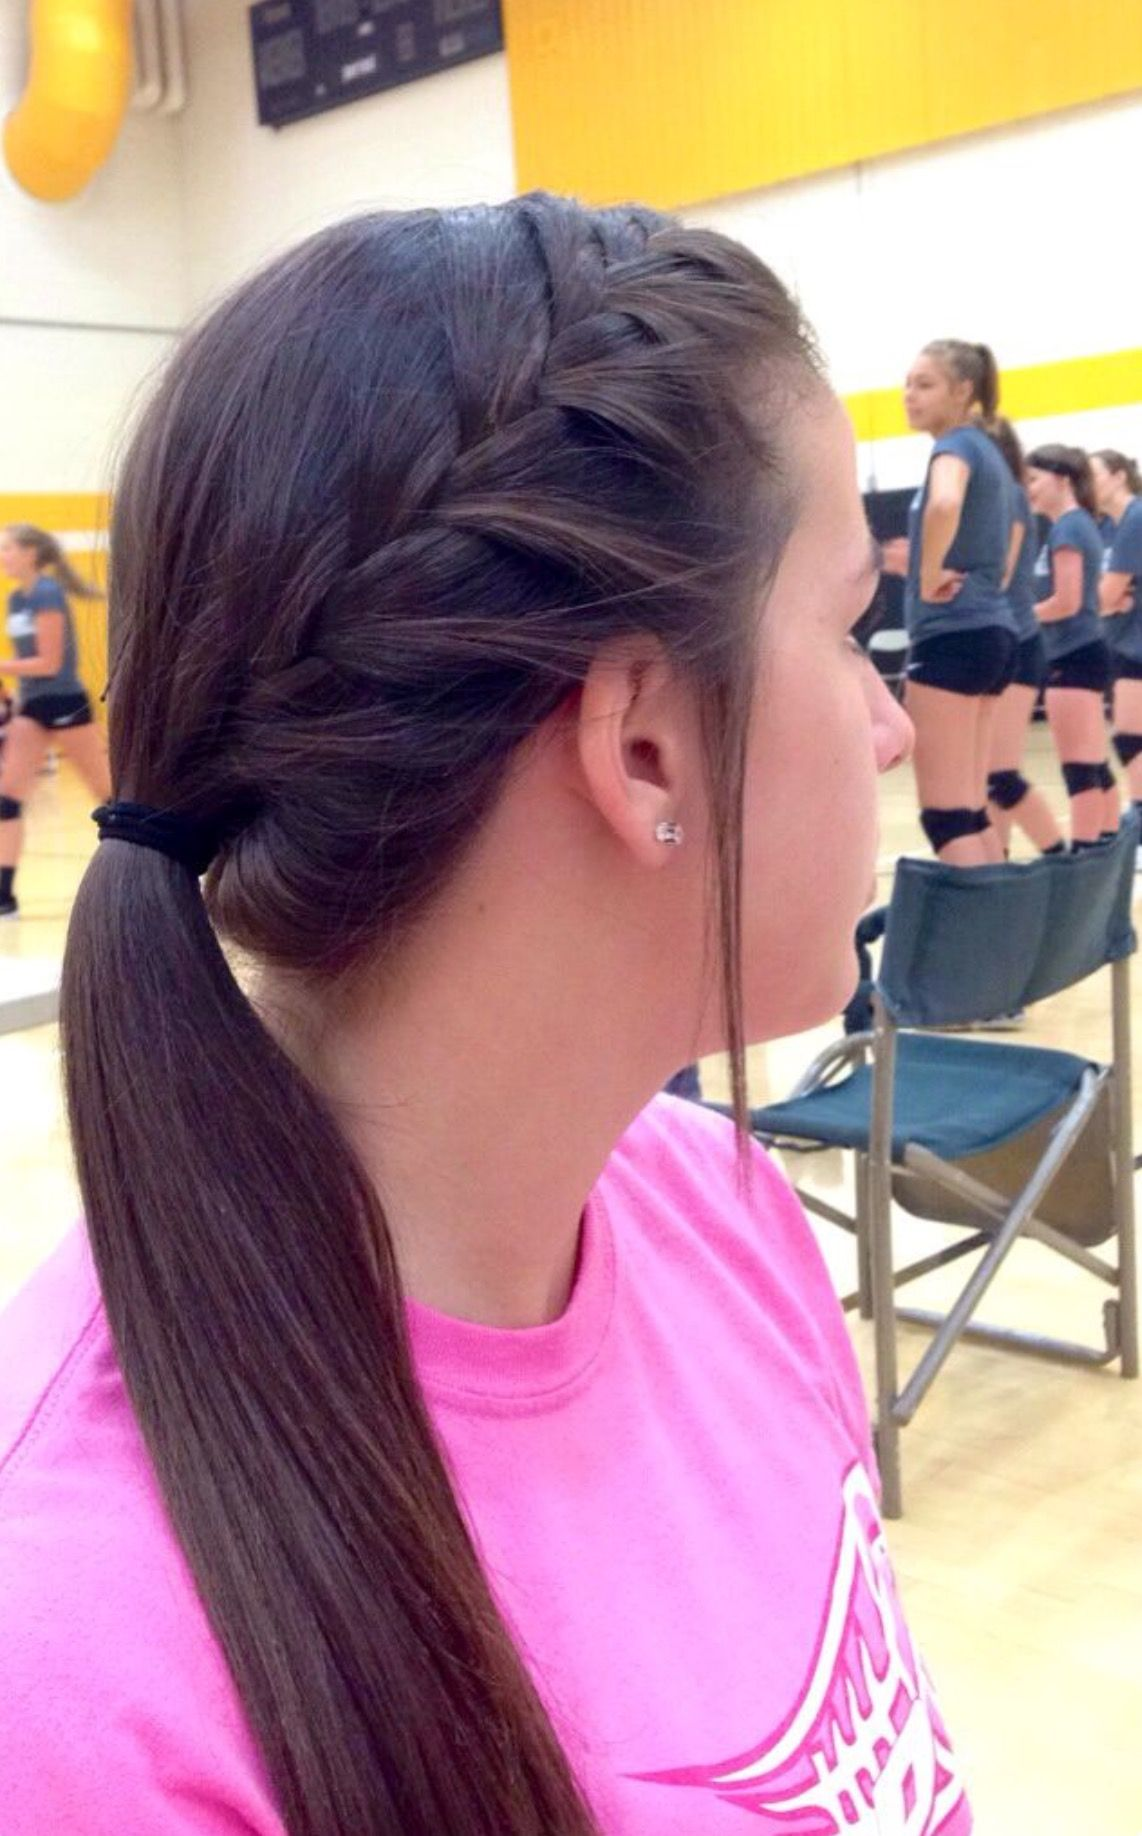 Pin by lexi on hair pinterest hair style sporty hair and